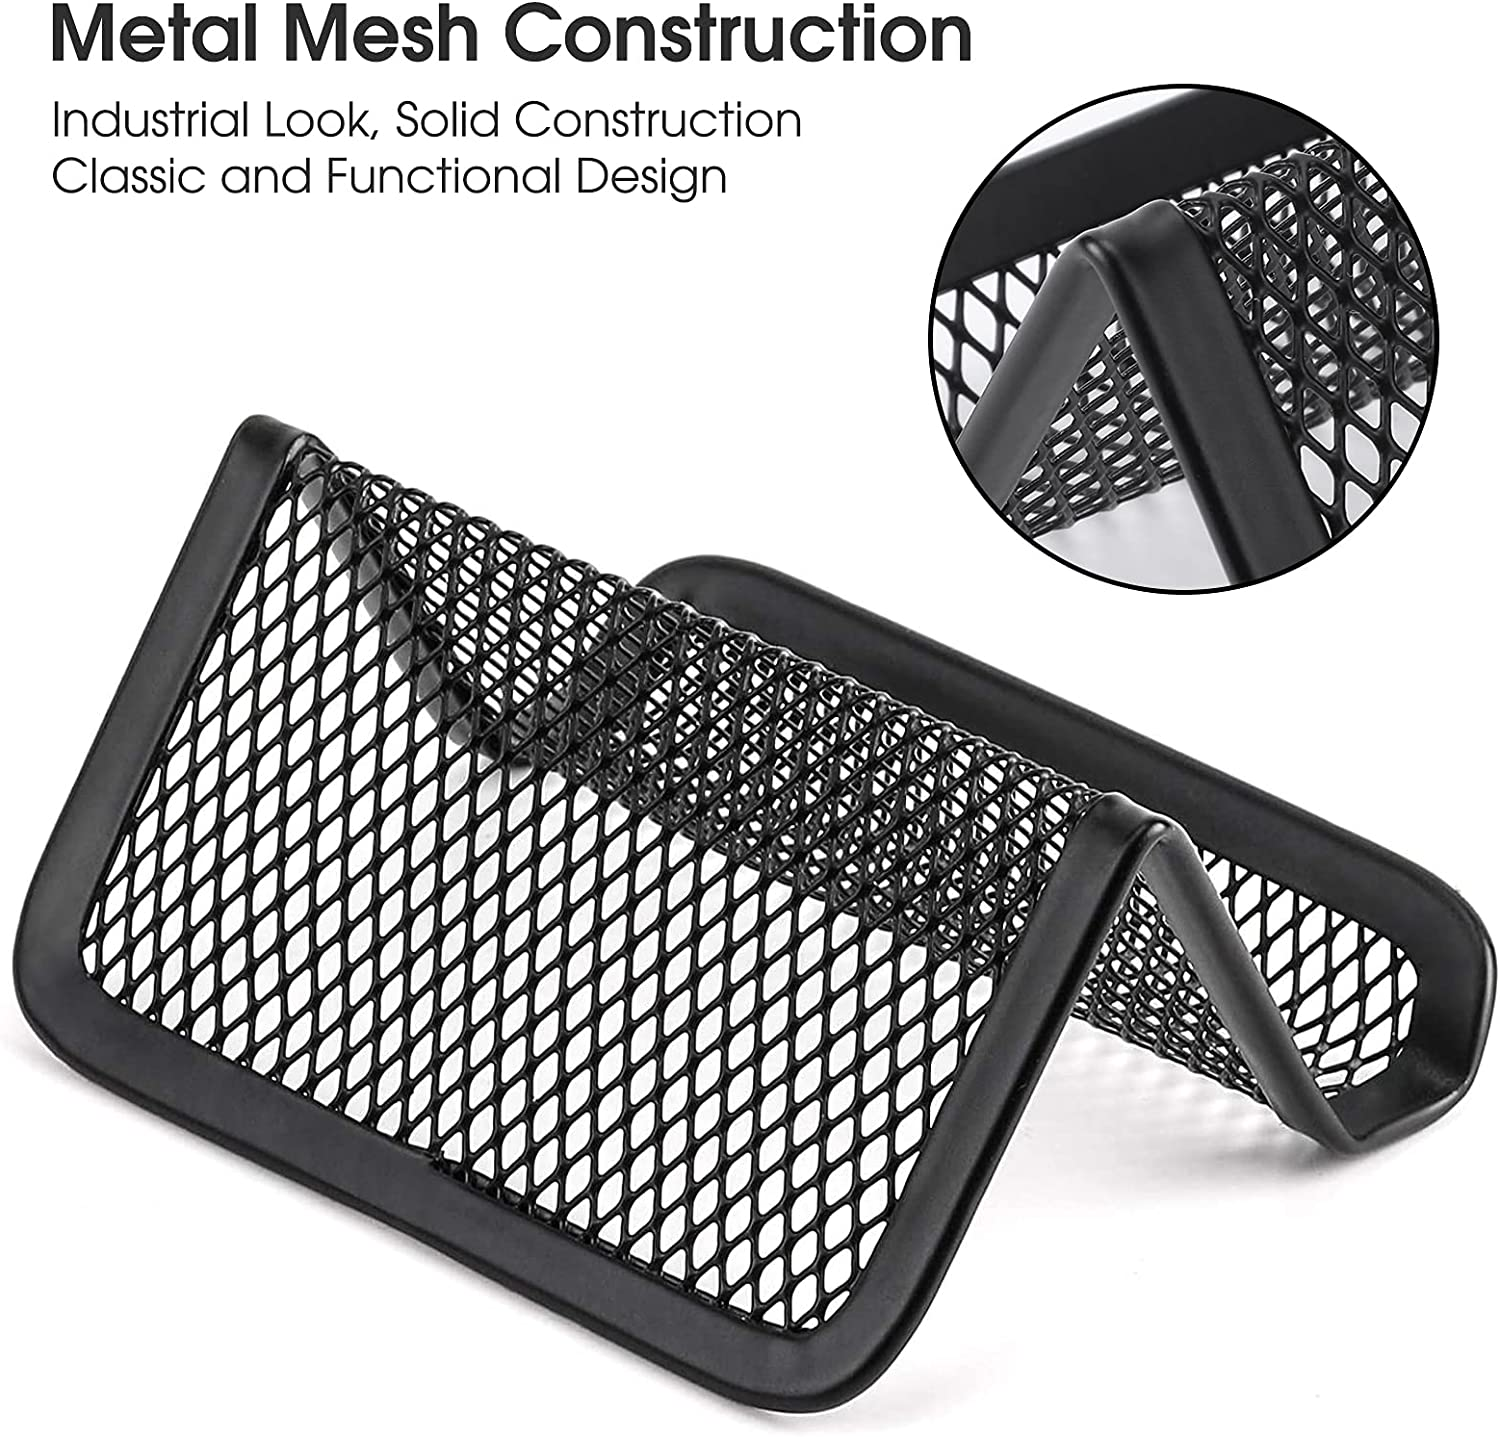 Buy MaxGear Business Card Holder for Desk Metal Business Card ...